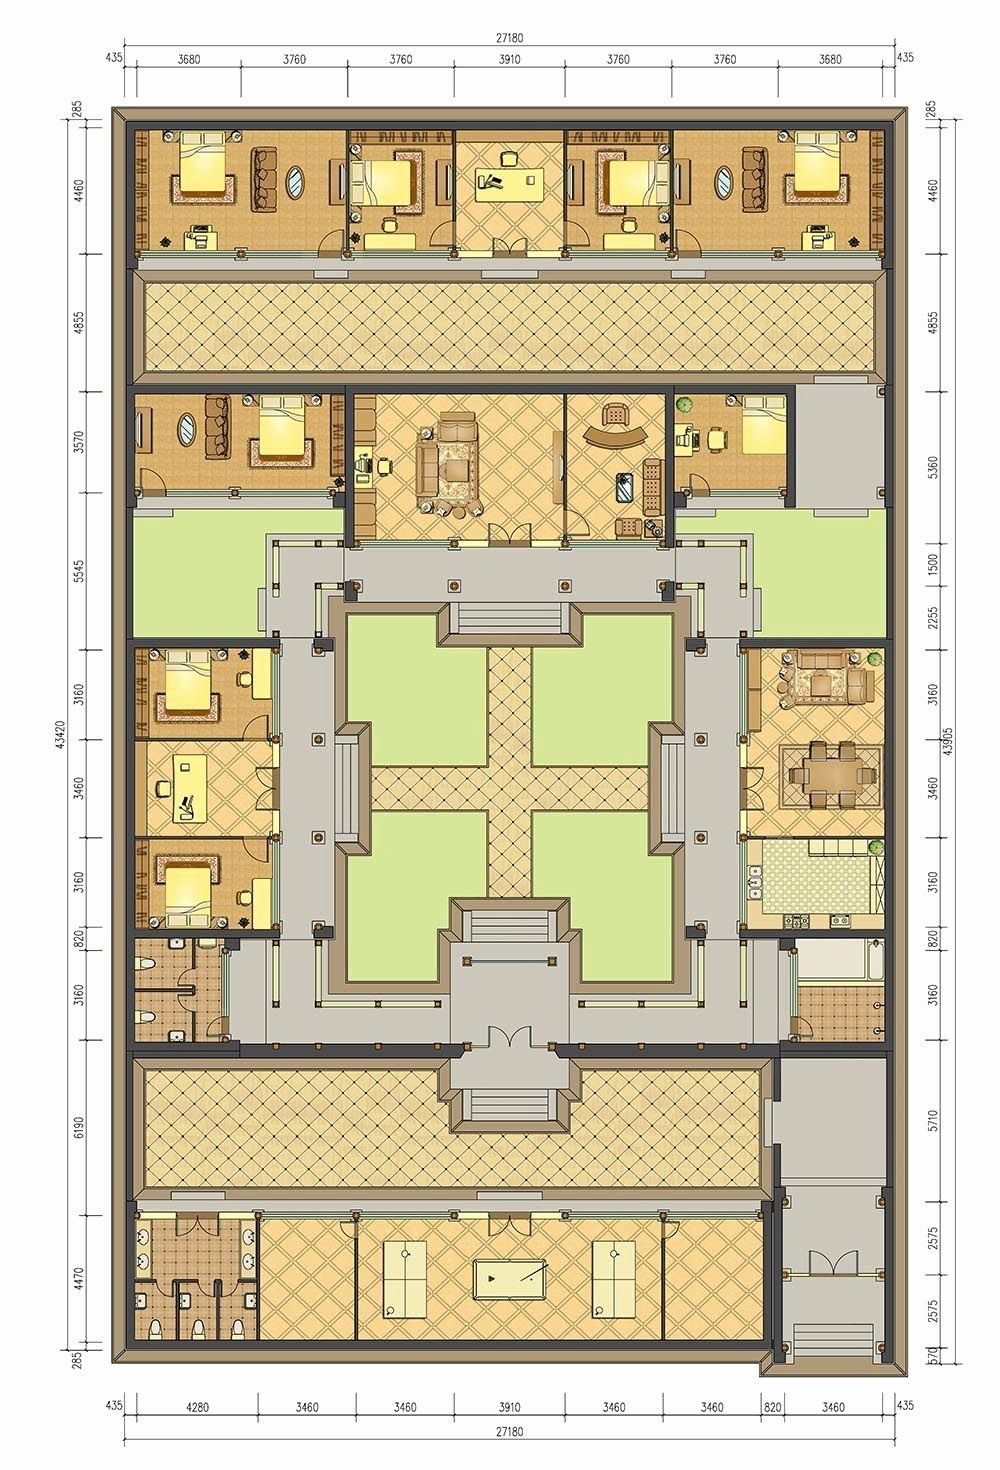 Traditional Chinese House Plans Fresh Cgagtfcdwn6ailqkaasghuaecs8714 Traditional Chinese House Courtyard House Plans Japanese House